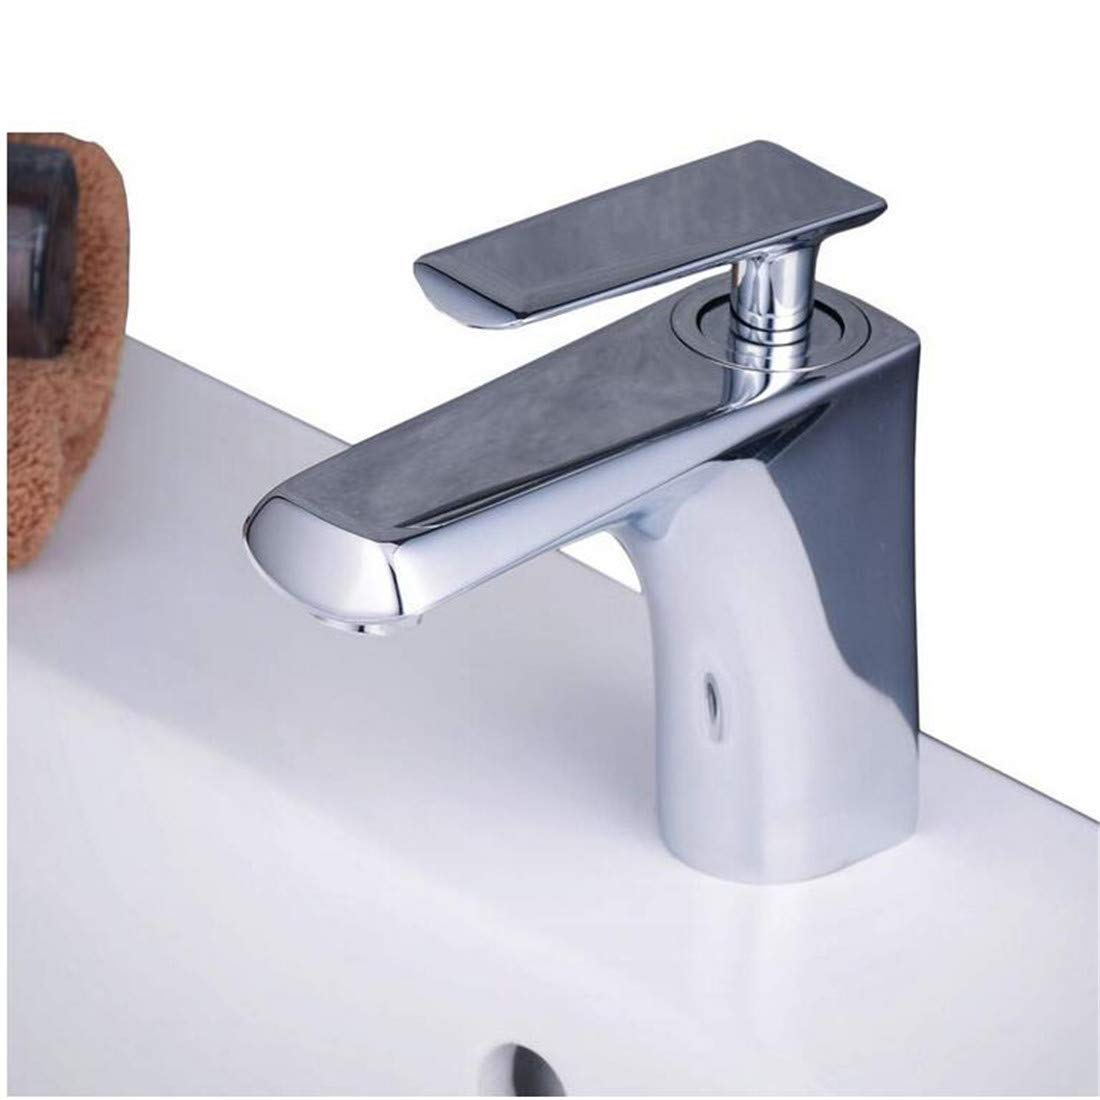 Retro Kitchen Hot and Cold Water 360 Degree redation Mono Basin Mixer Tap Bathroom Sink Taps Lever Wash Basin Faucet